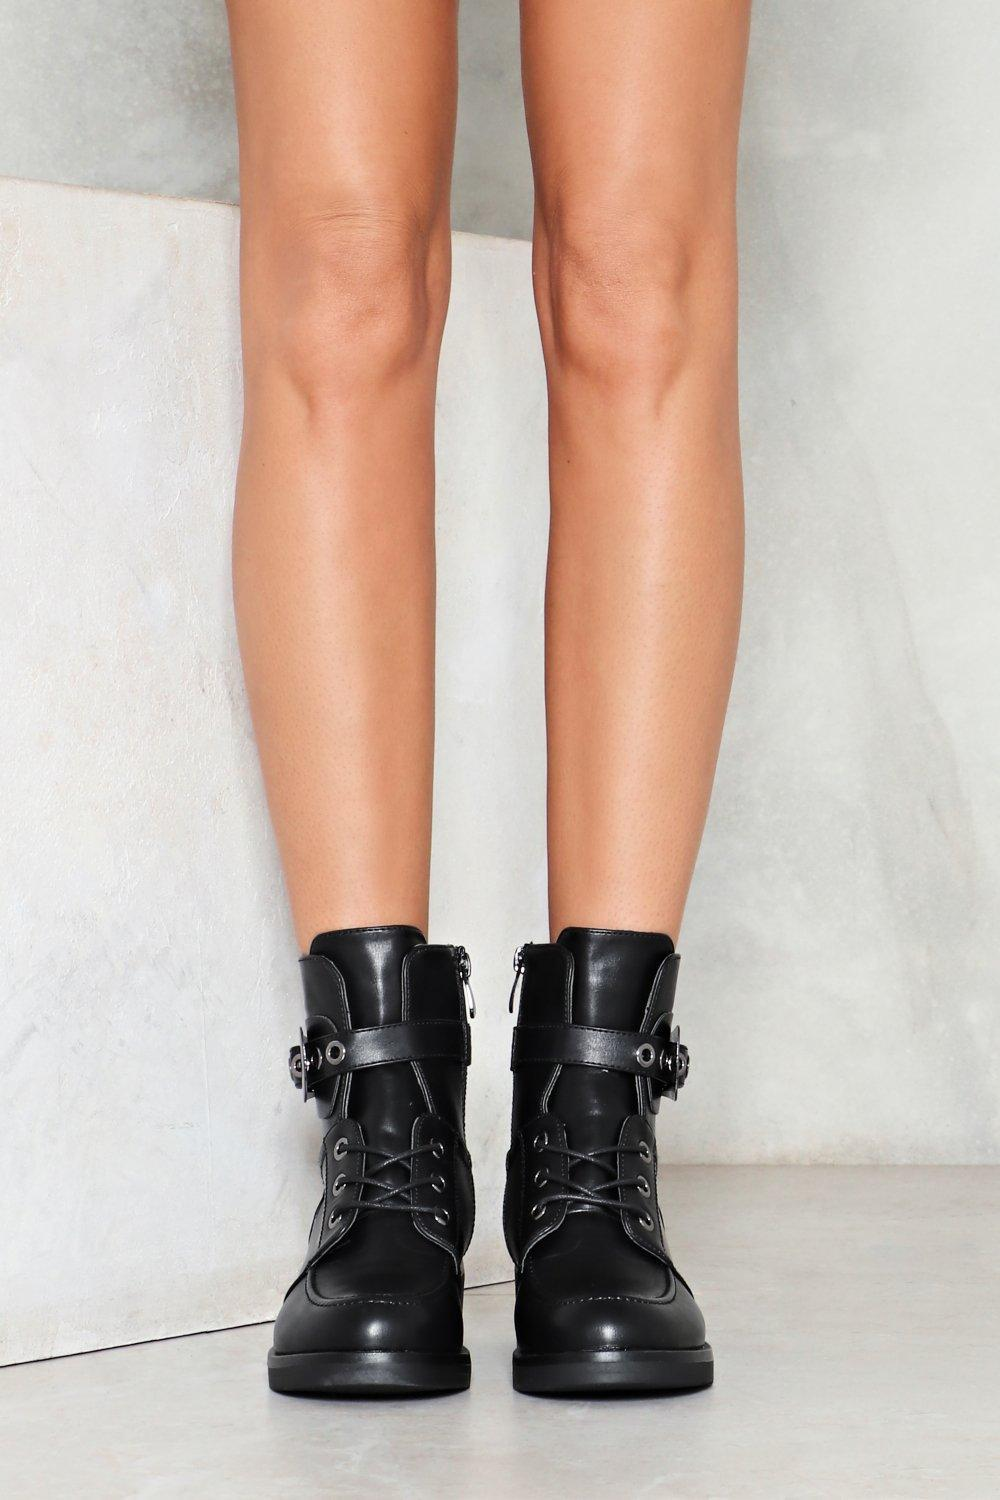 Nasty Gal Take The Lead Vegan Leather Boot in Black